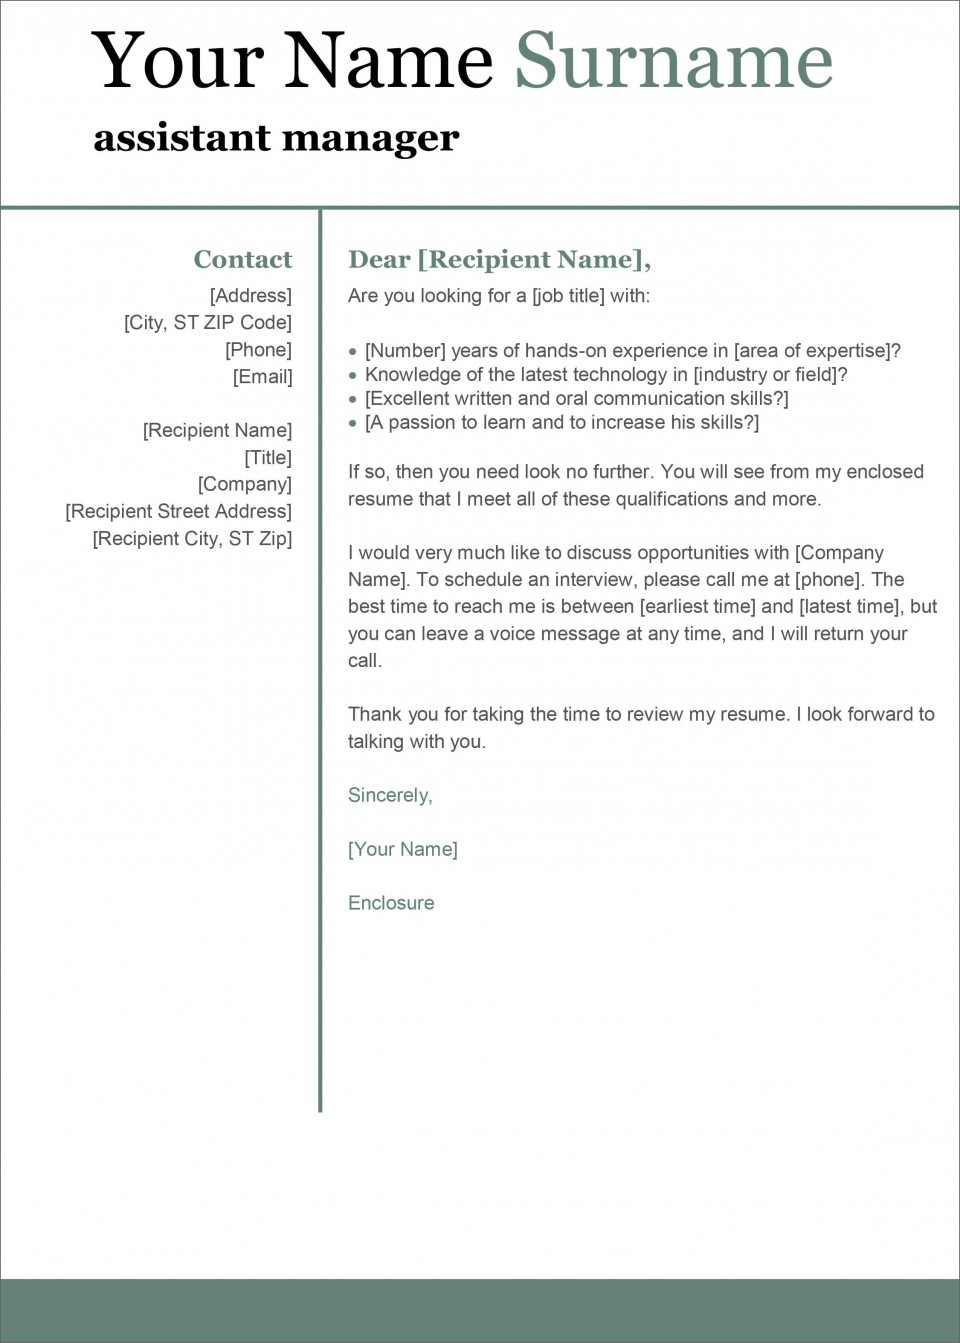 004 Singular Cover Letter Template Microsoft Word Inspiration  2007 Fax960